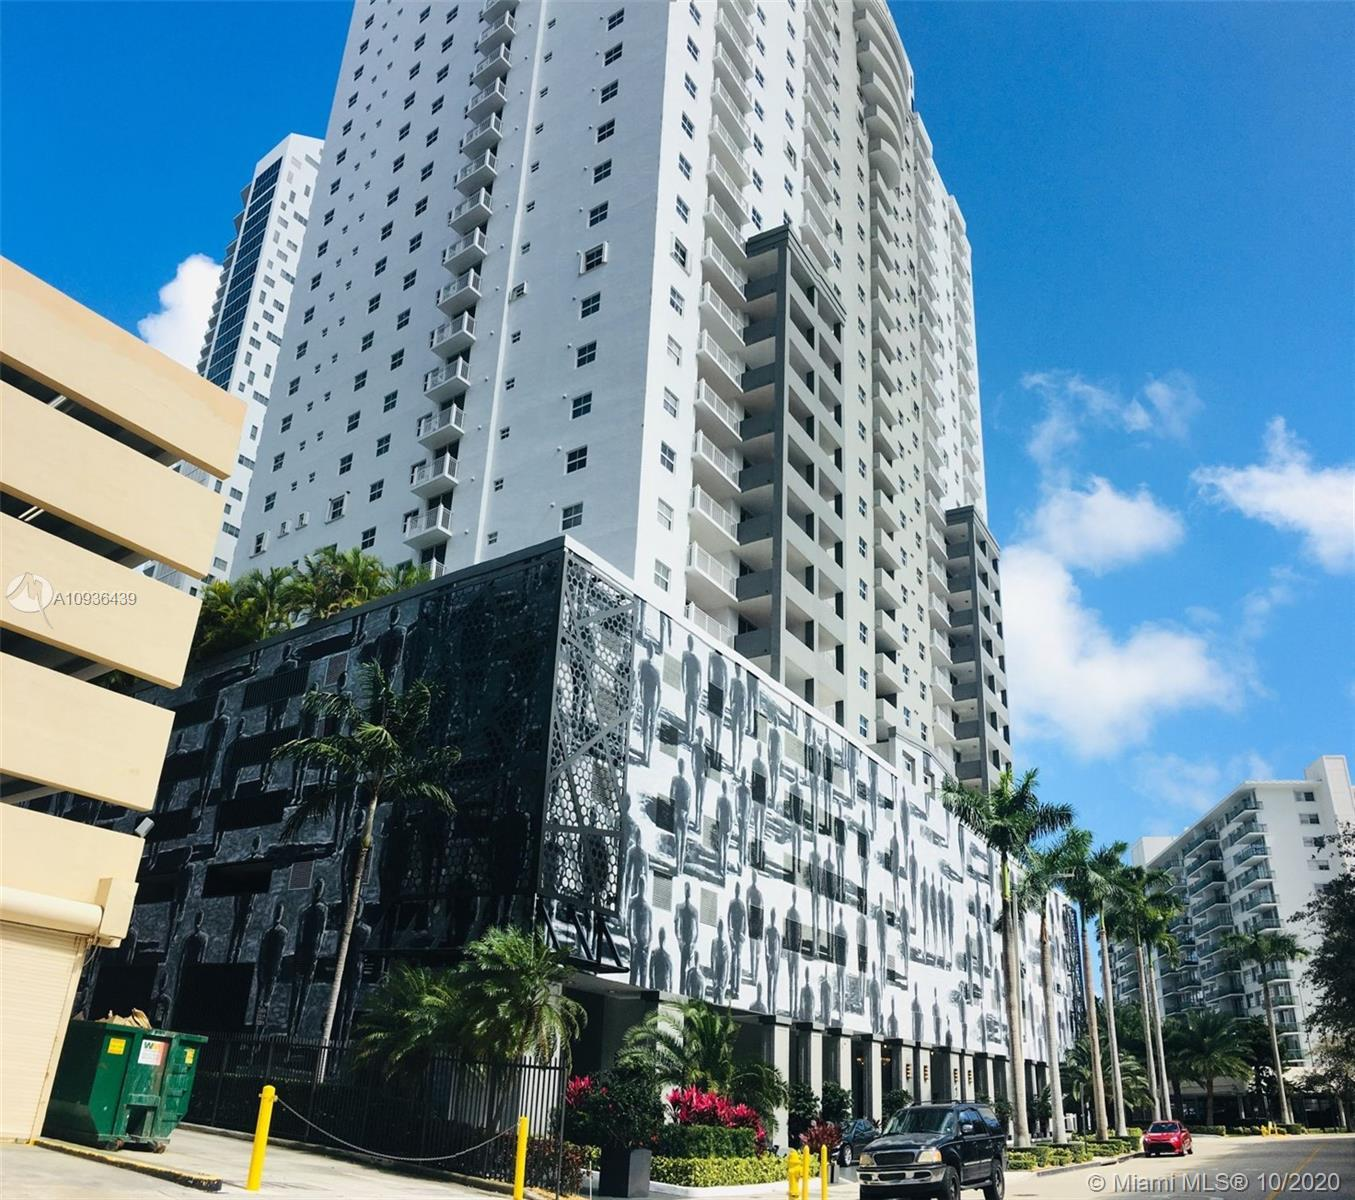 Great condo in The Fortune house, the building is a combination of residential condominium and condo